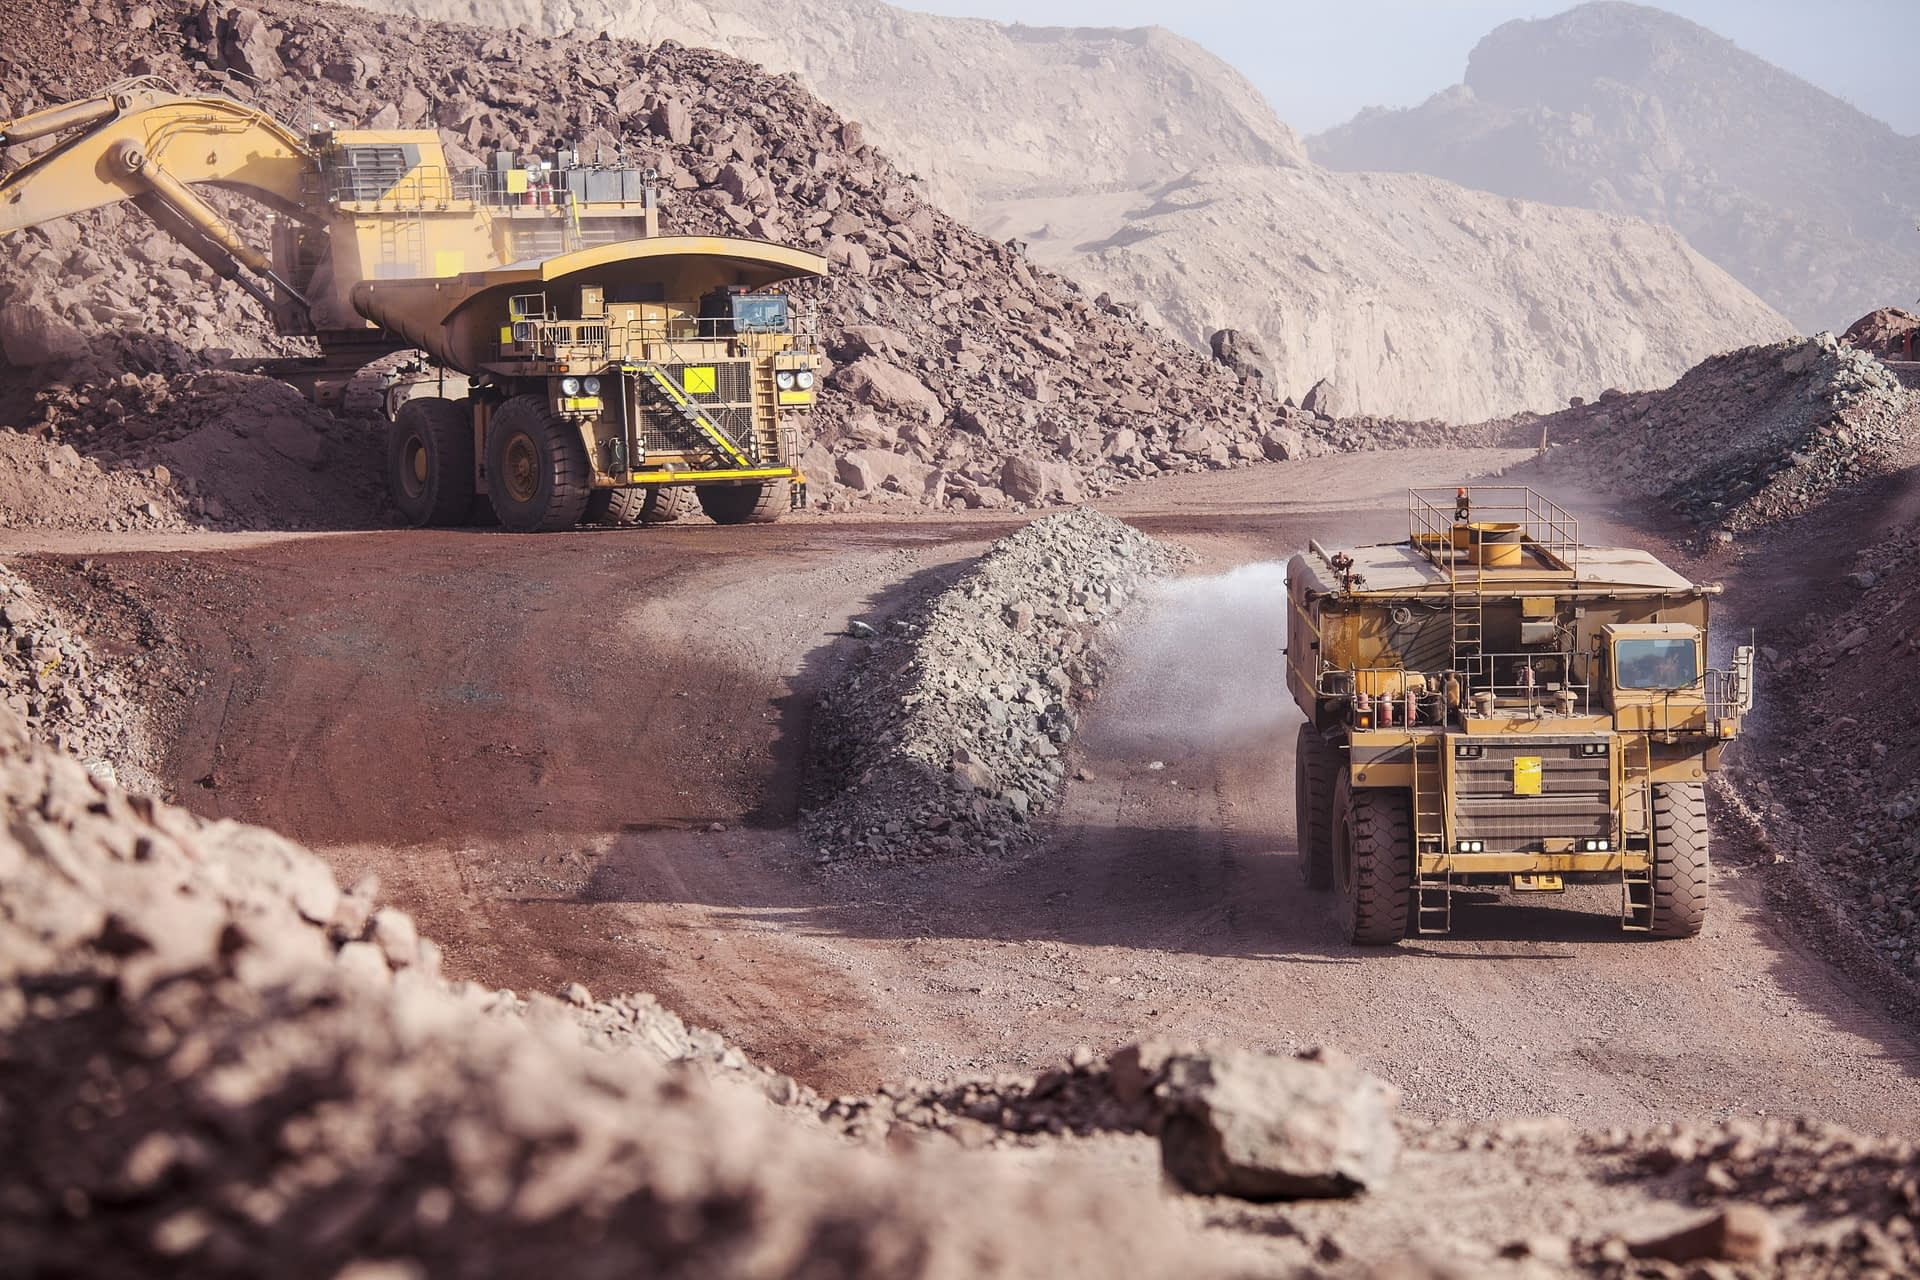 Mining activities can be connected with human rights violations and cause environmental damage.